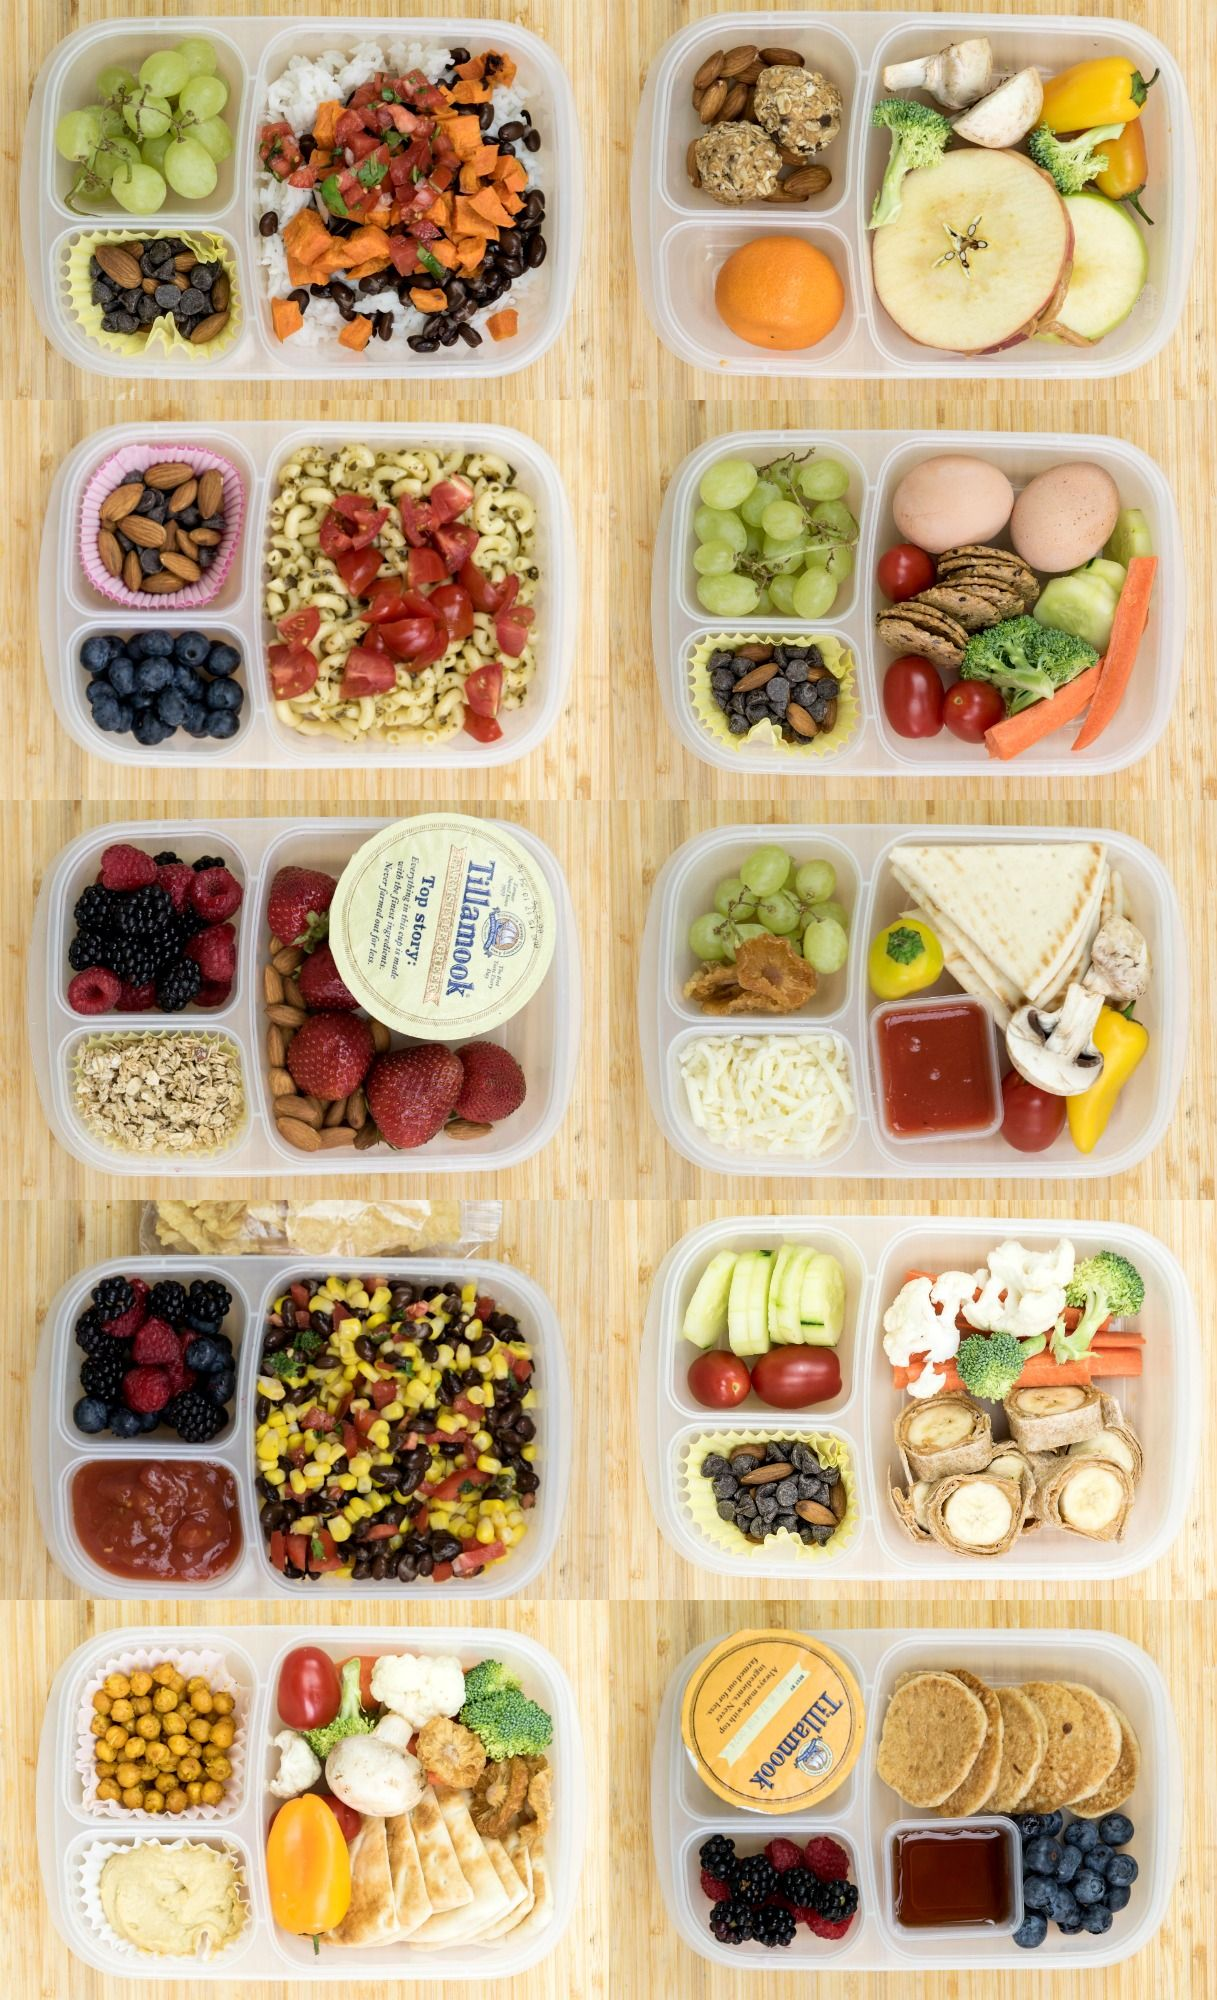 Ideas For Kids Bedroom: 12 Healthy Lunch Box Ideas For Kids Or Adults